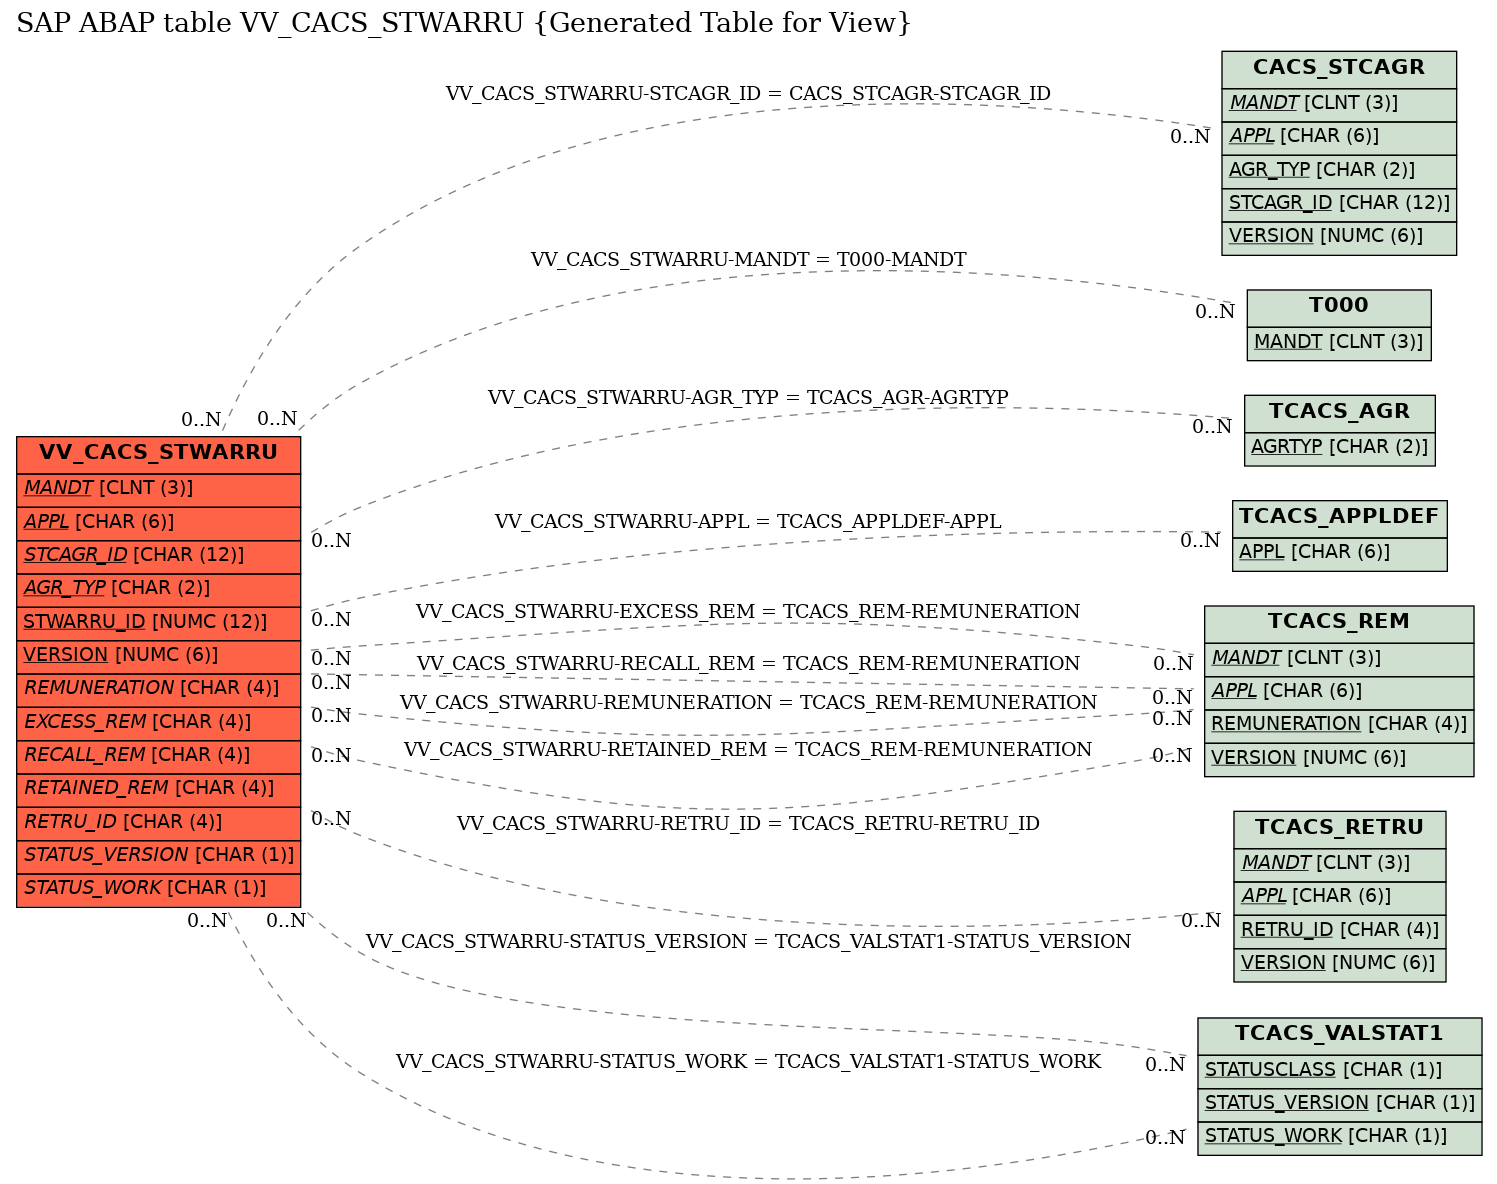 E-R Diagram for table VV_CACS_STWARRU (Generated Table for View)